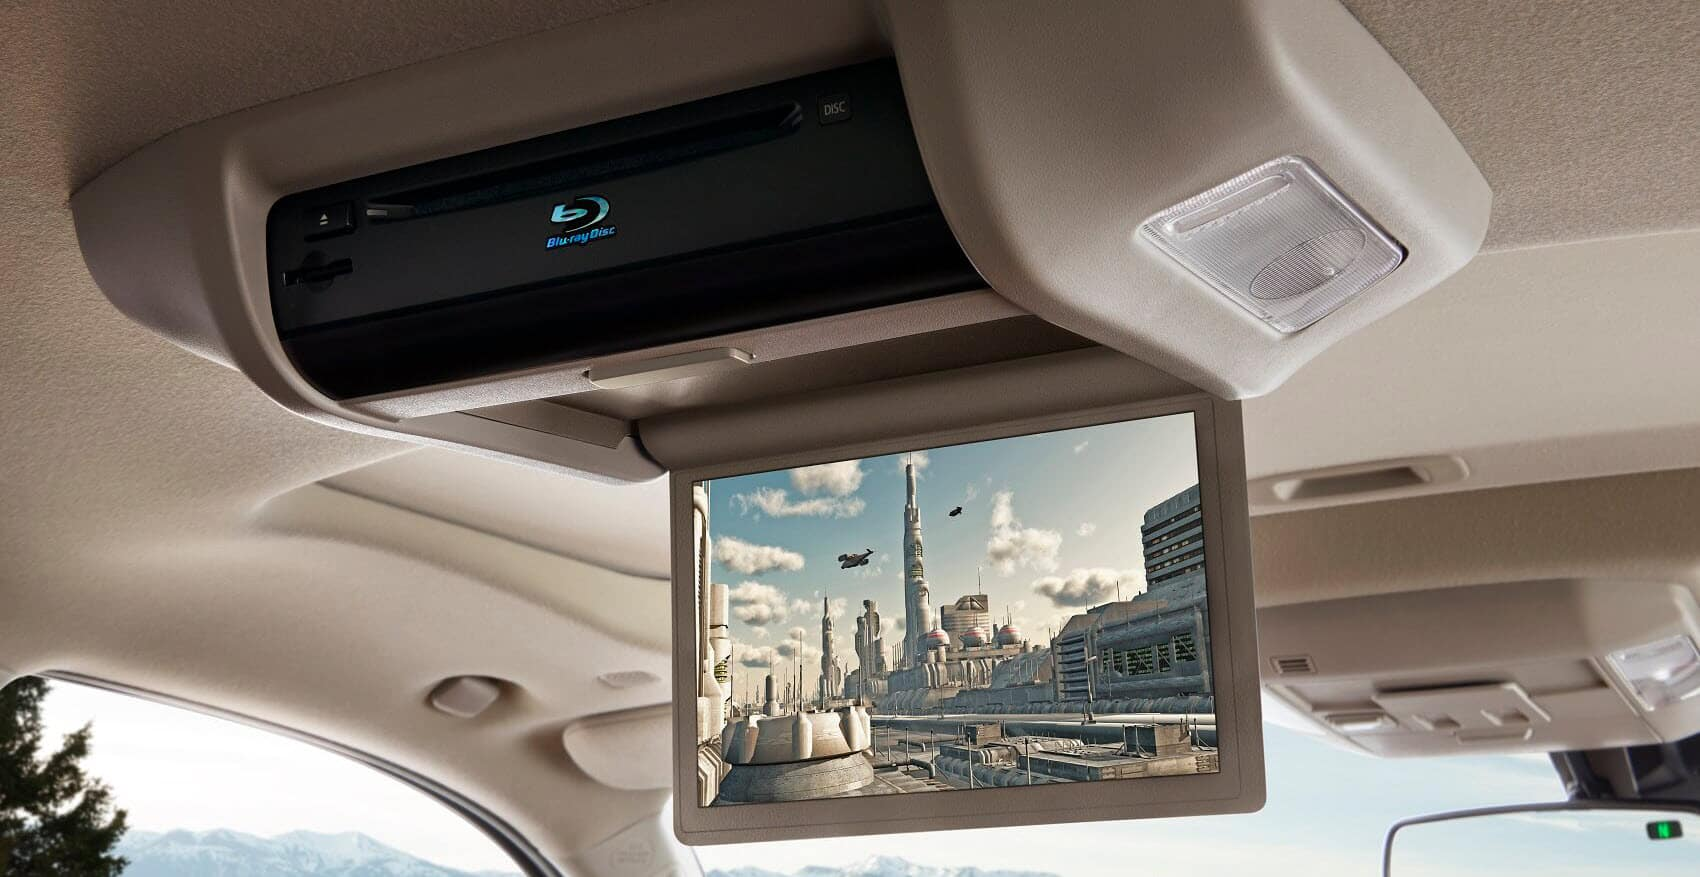 Toyota Sequoia 9-inch display comes with a Blu-ray Disc™ player